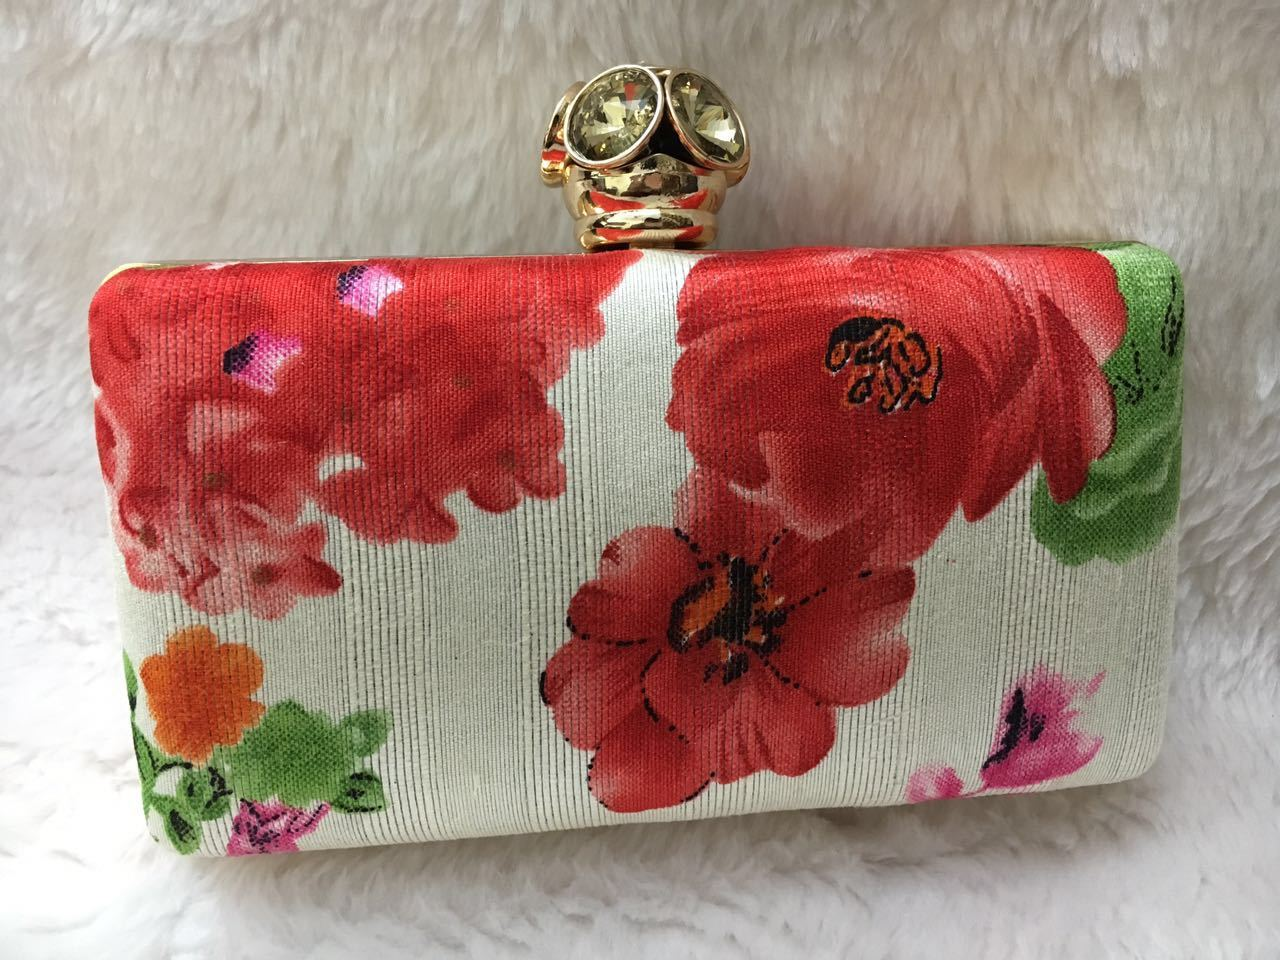 Designer Floral Print Box Clutch Bag